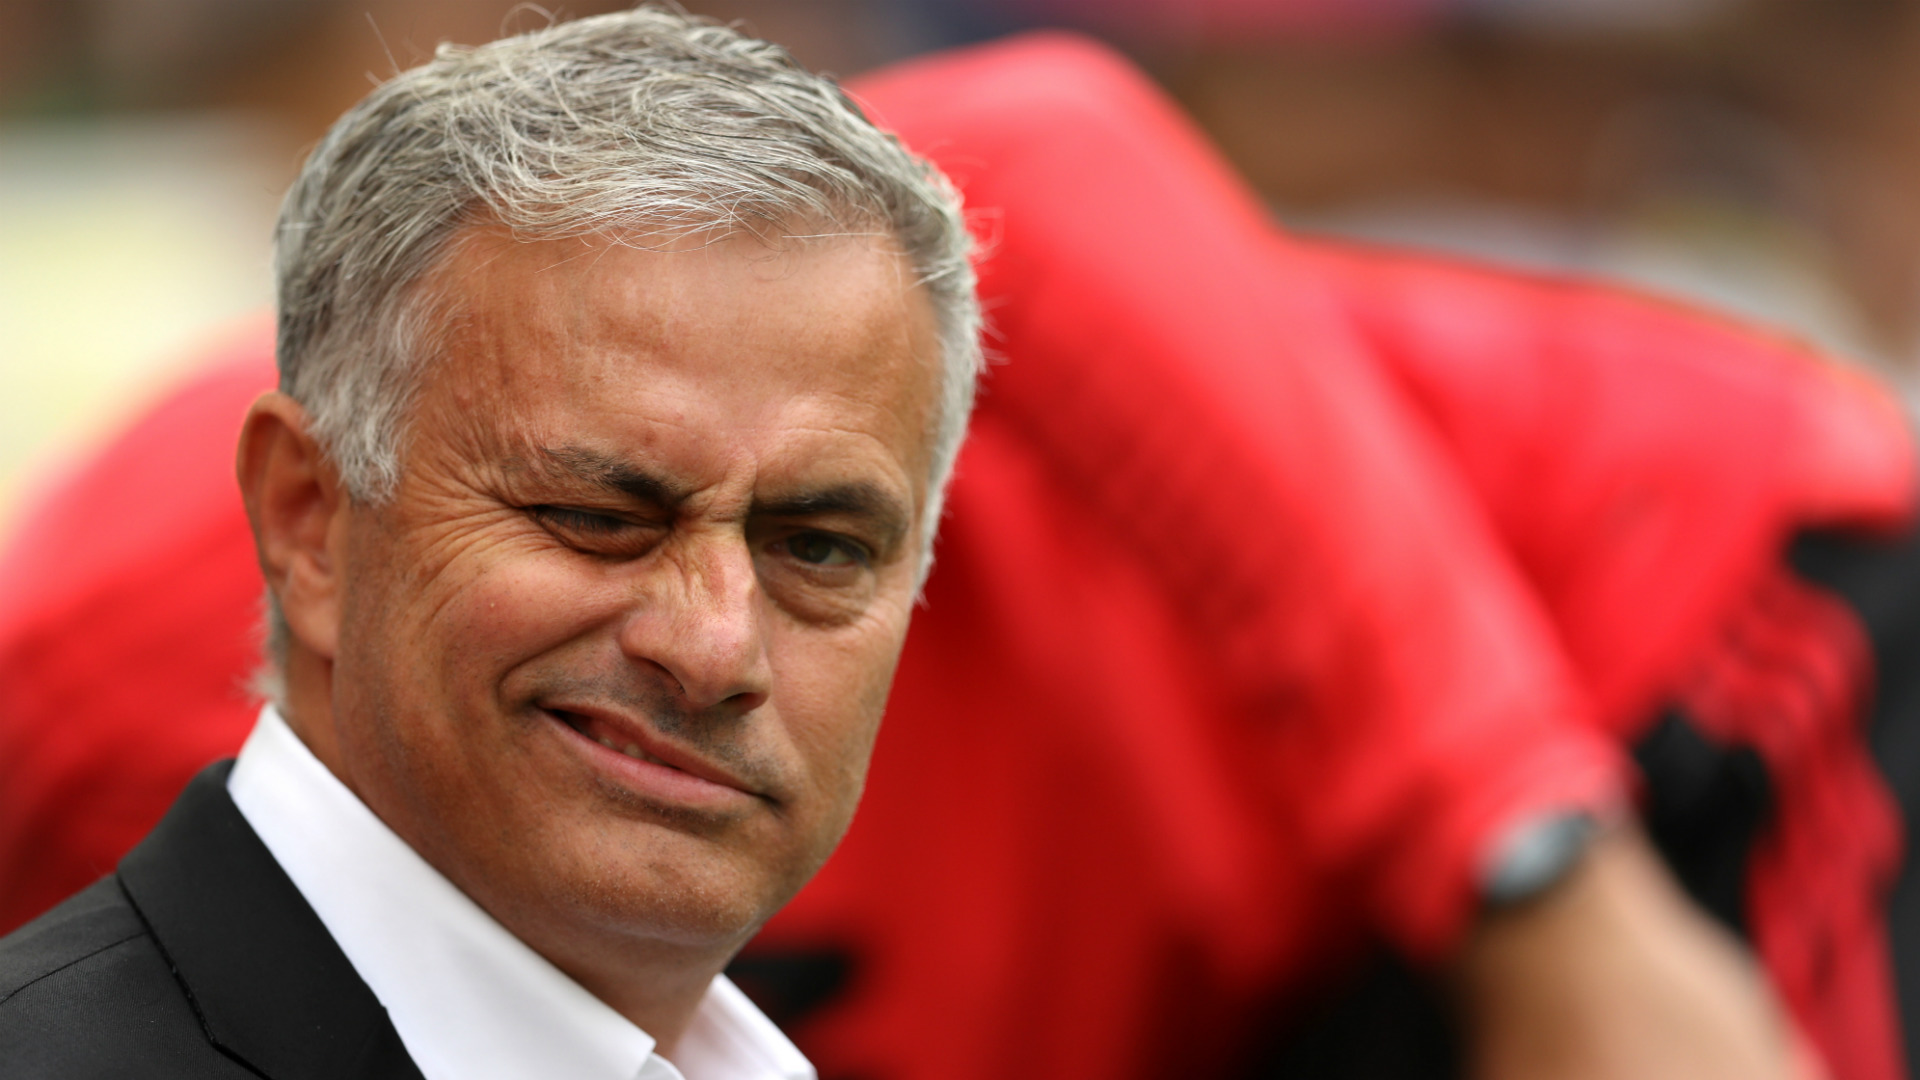 Jose Mourinho: What's wrong at Manchester United?